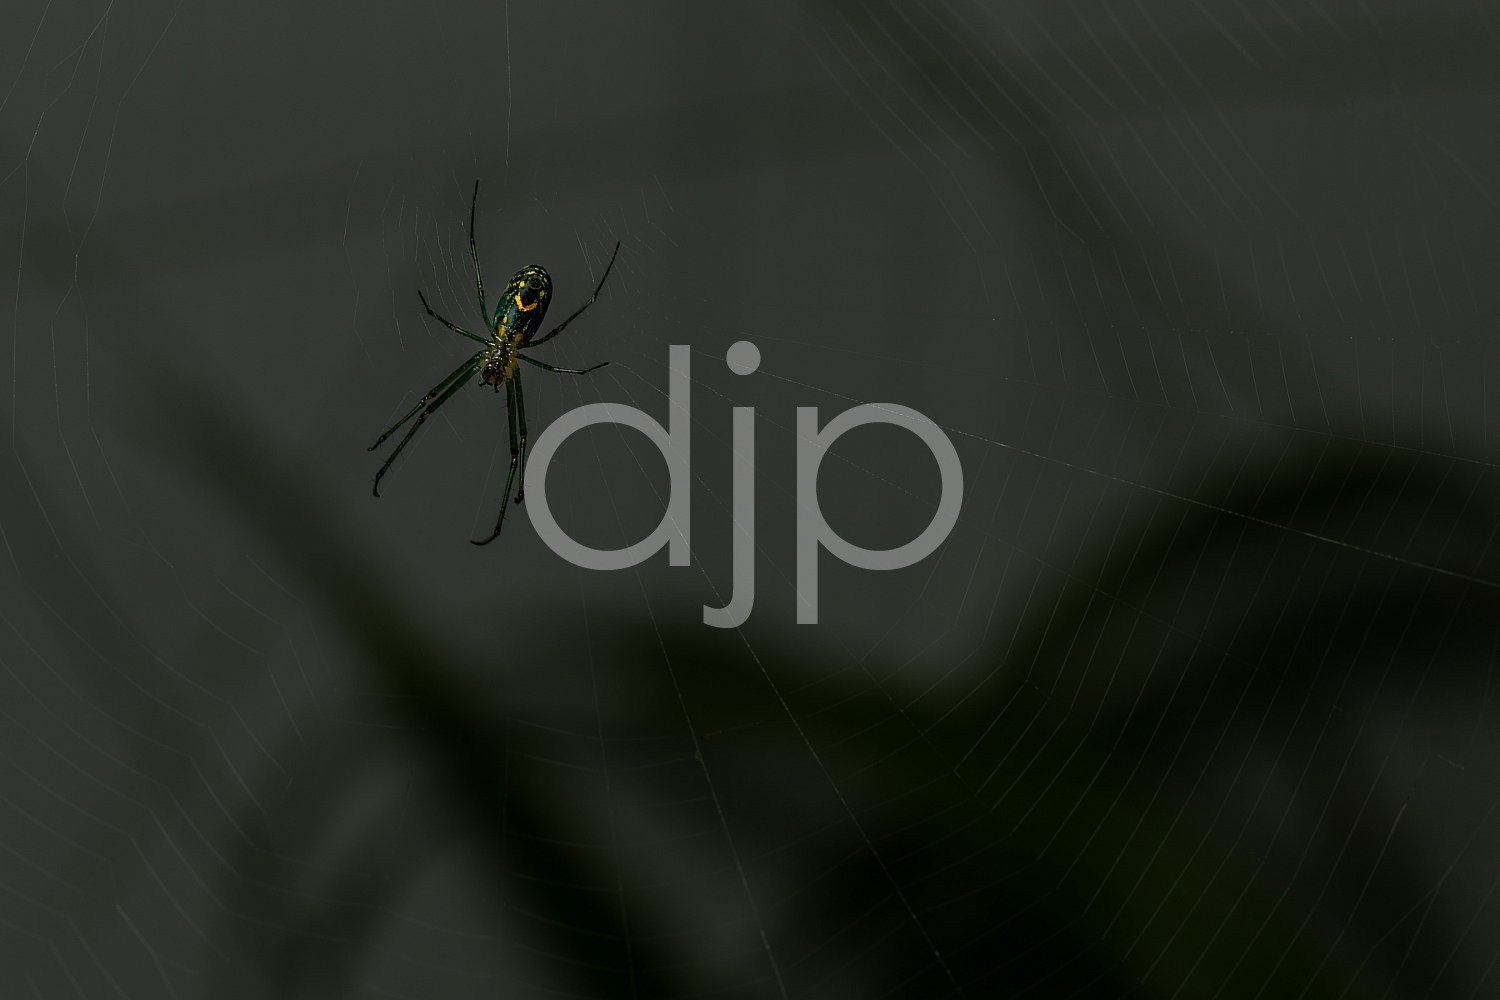 D Jones Photography, Sugar Land, djonesphoto, excursions with djp, green, macro, personal, quarantine, spider, spiderweb, yellow, black